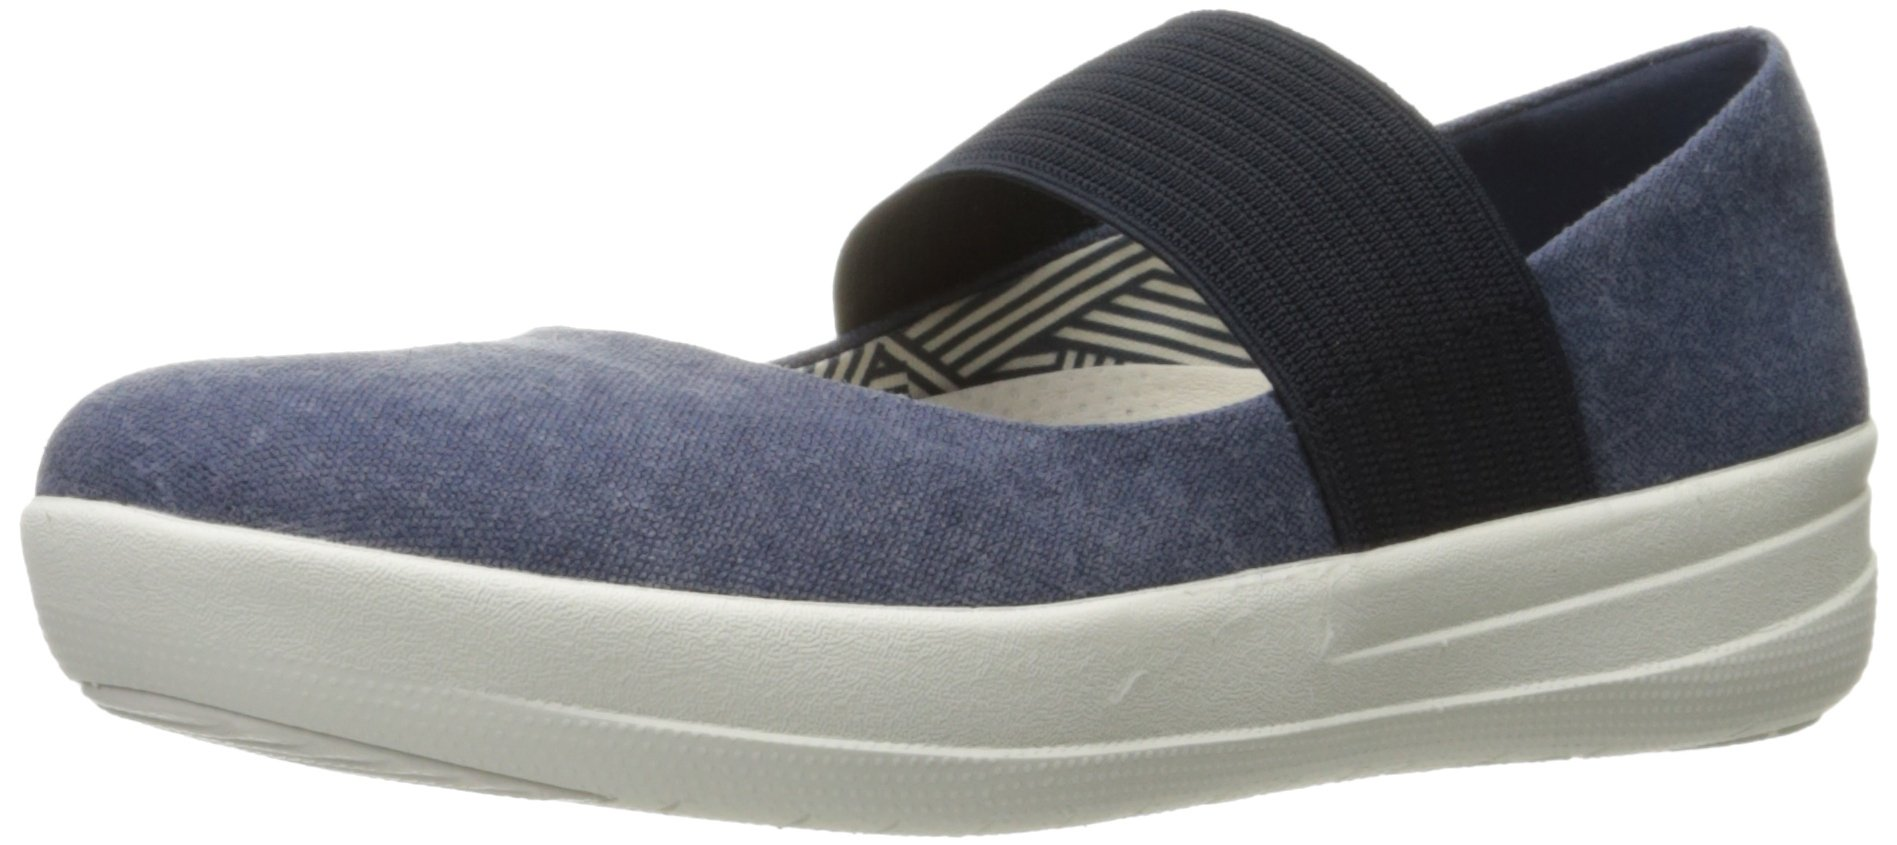 FitFlop Women's F-Sporty Mary Jane Flat, Midnight Navy, 6.5 M US by FitFlop (Image #1)